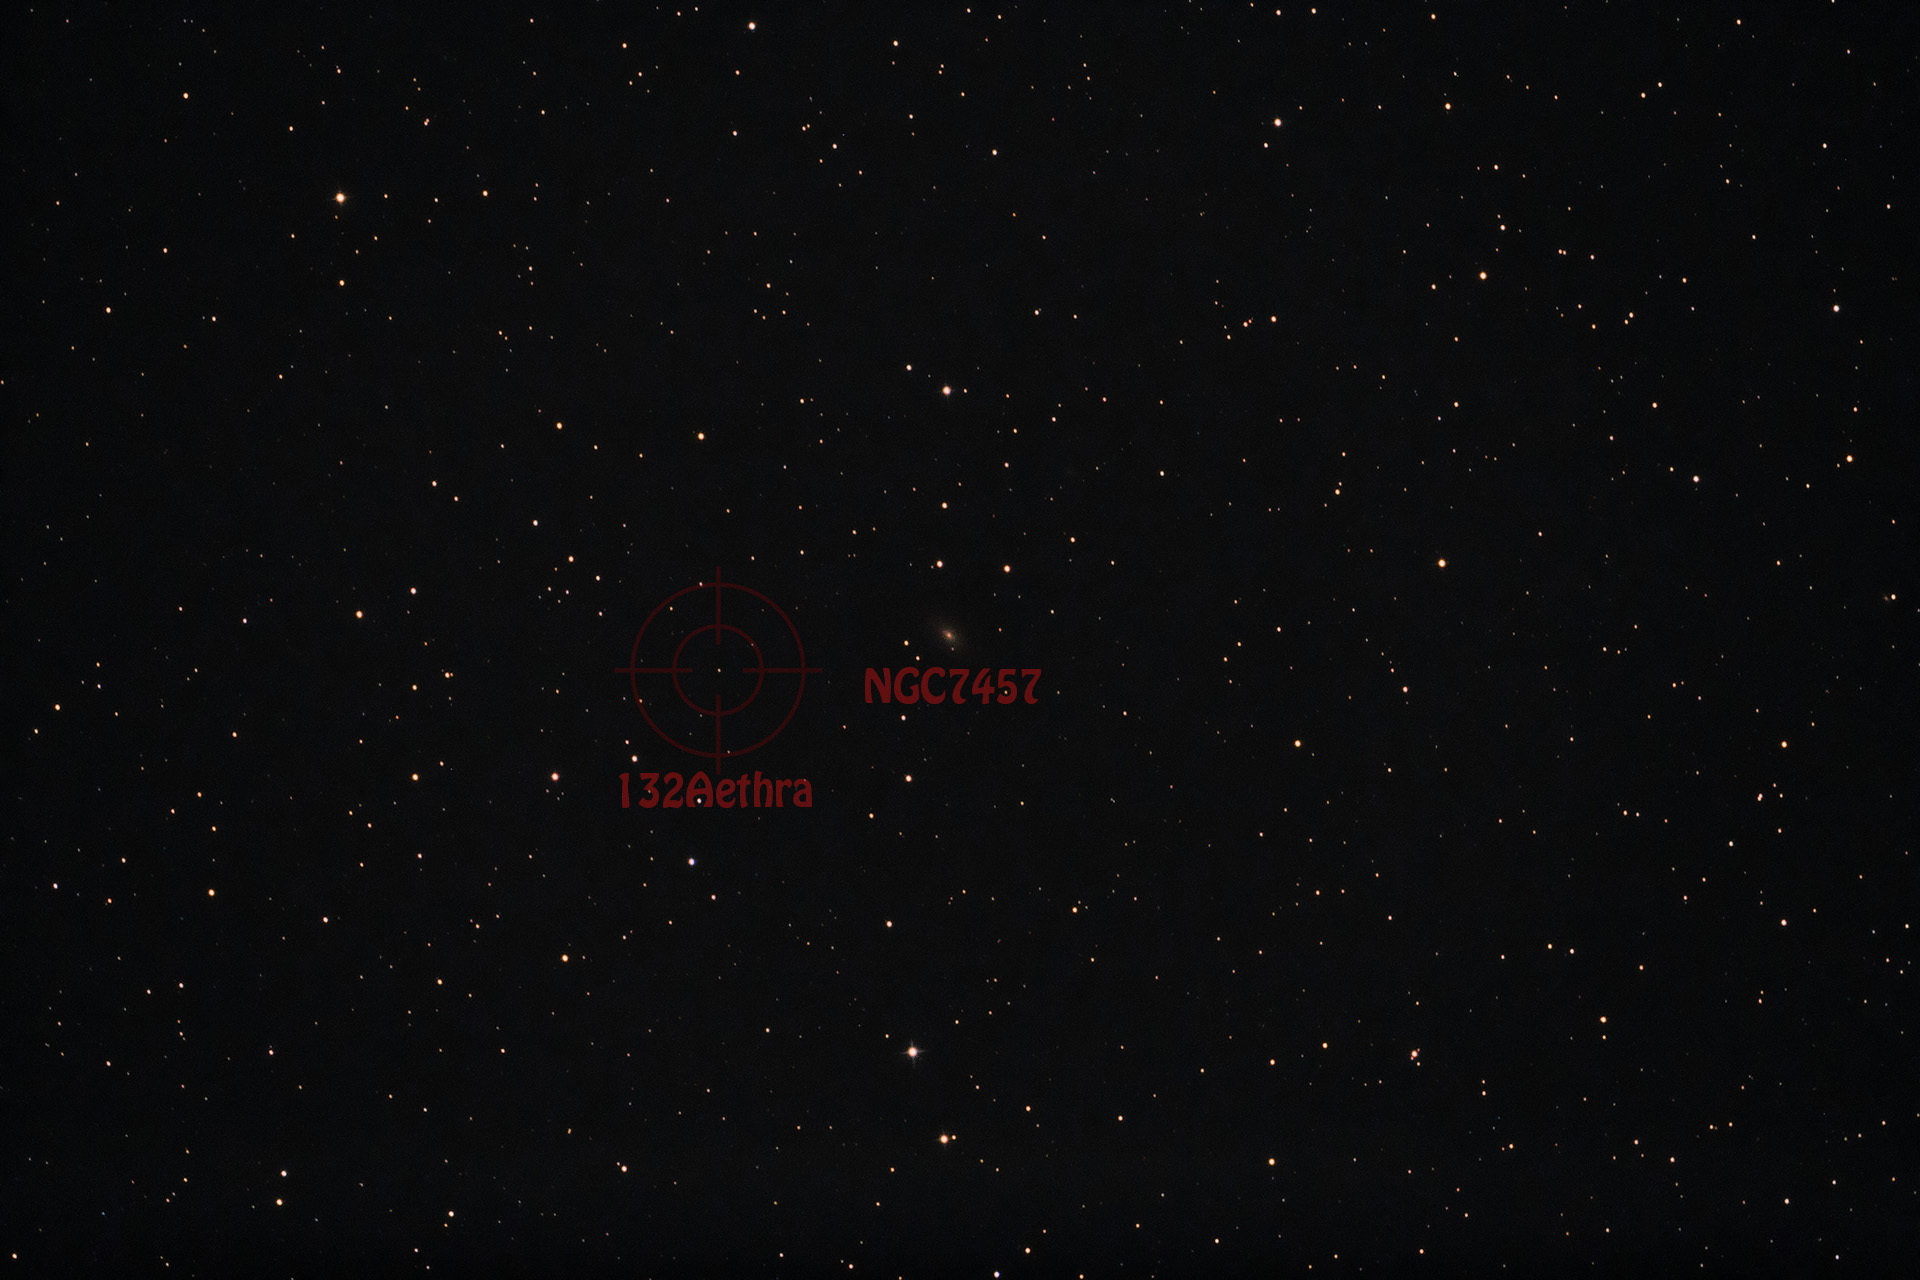 Asteroid 132Aethra am 23.08.2018